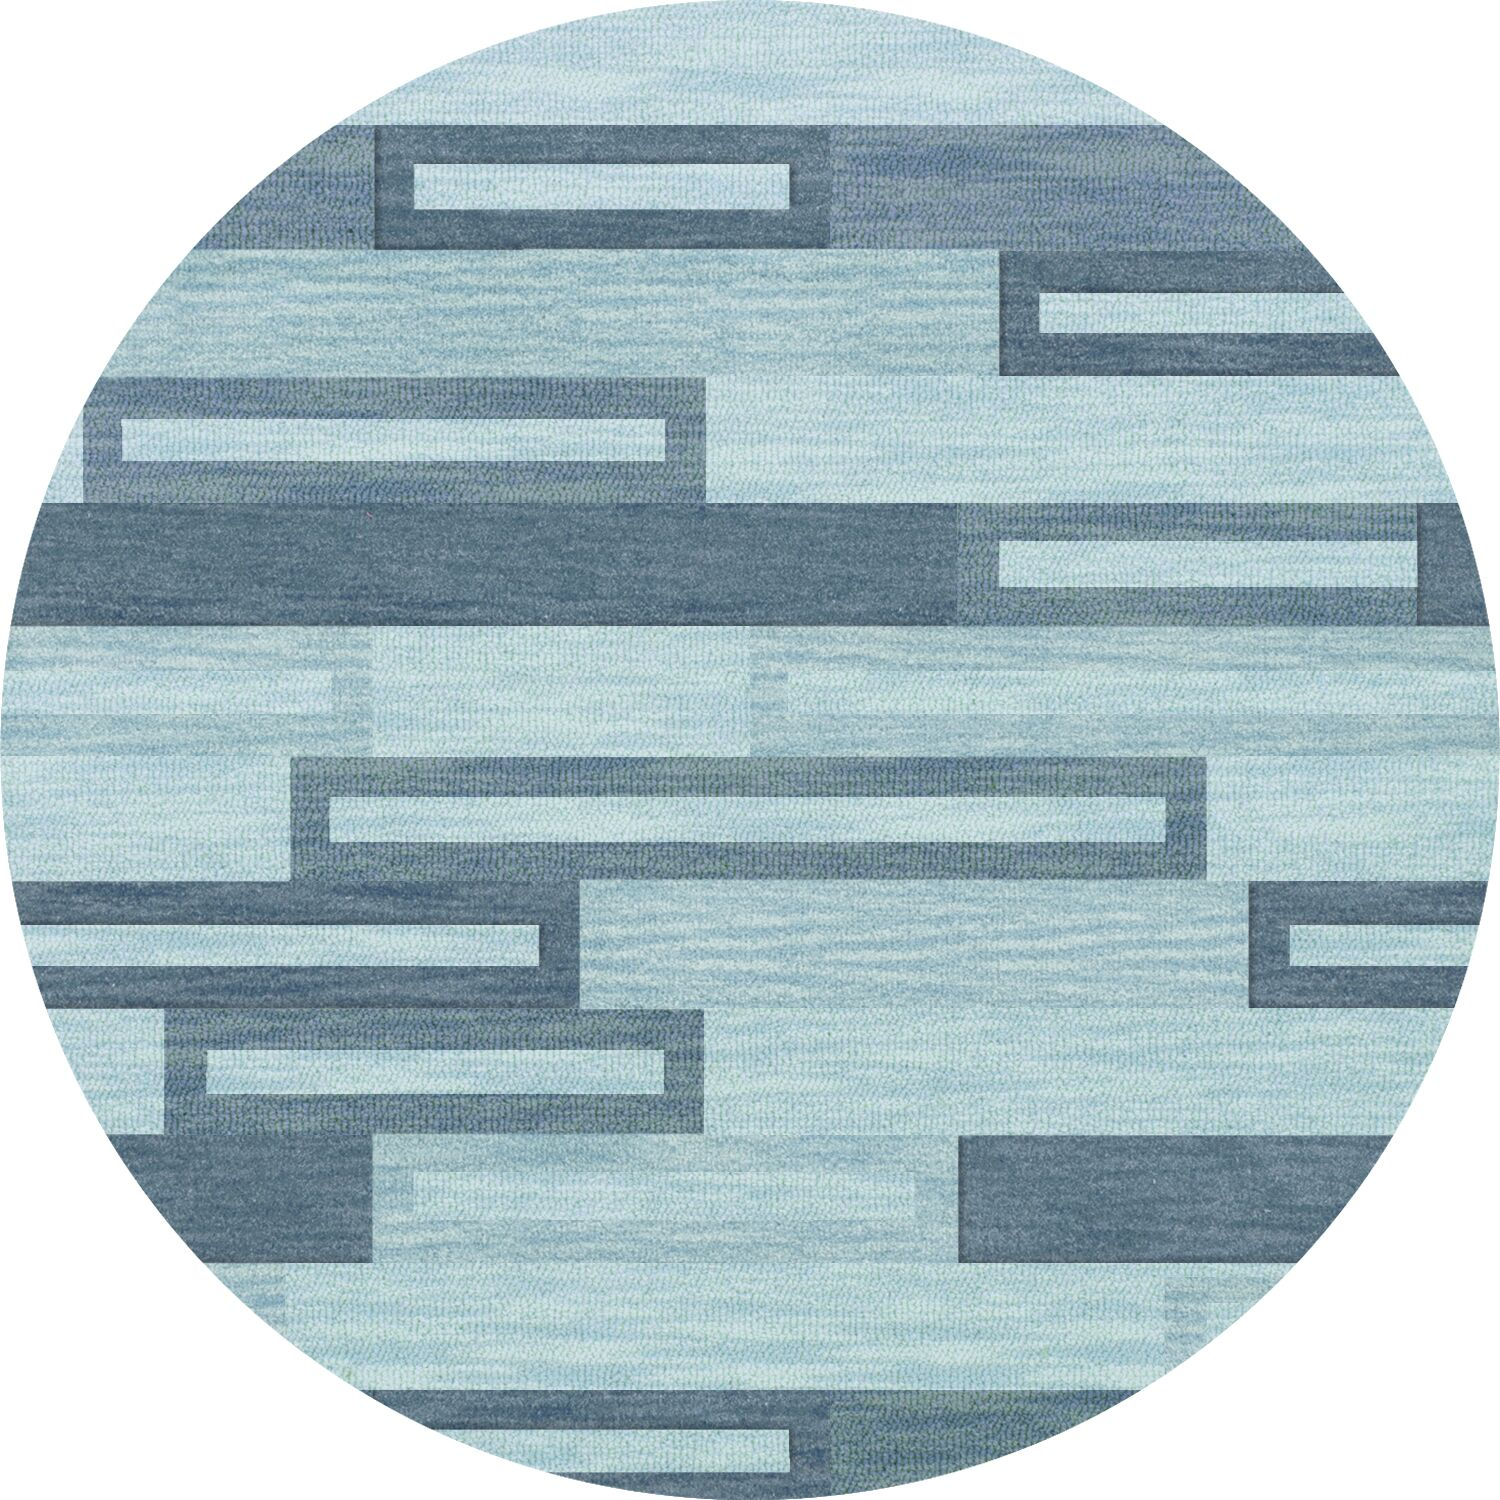 Bella Machine Woven Wool Blue Area Rug Rug Size: Round 8'